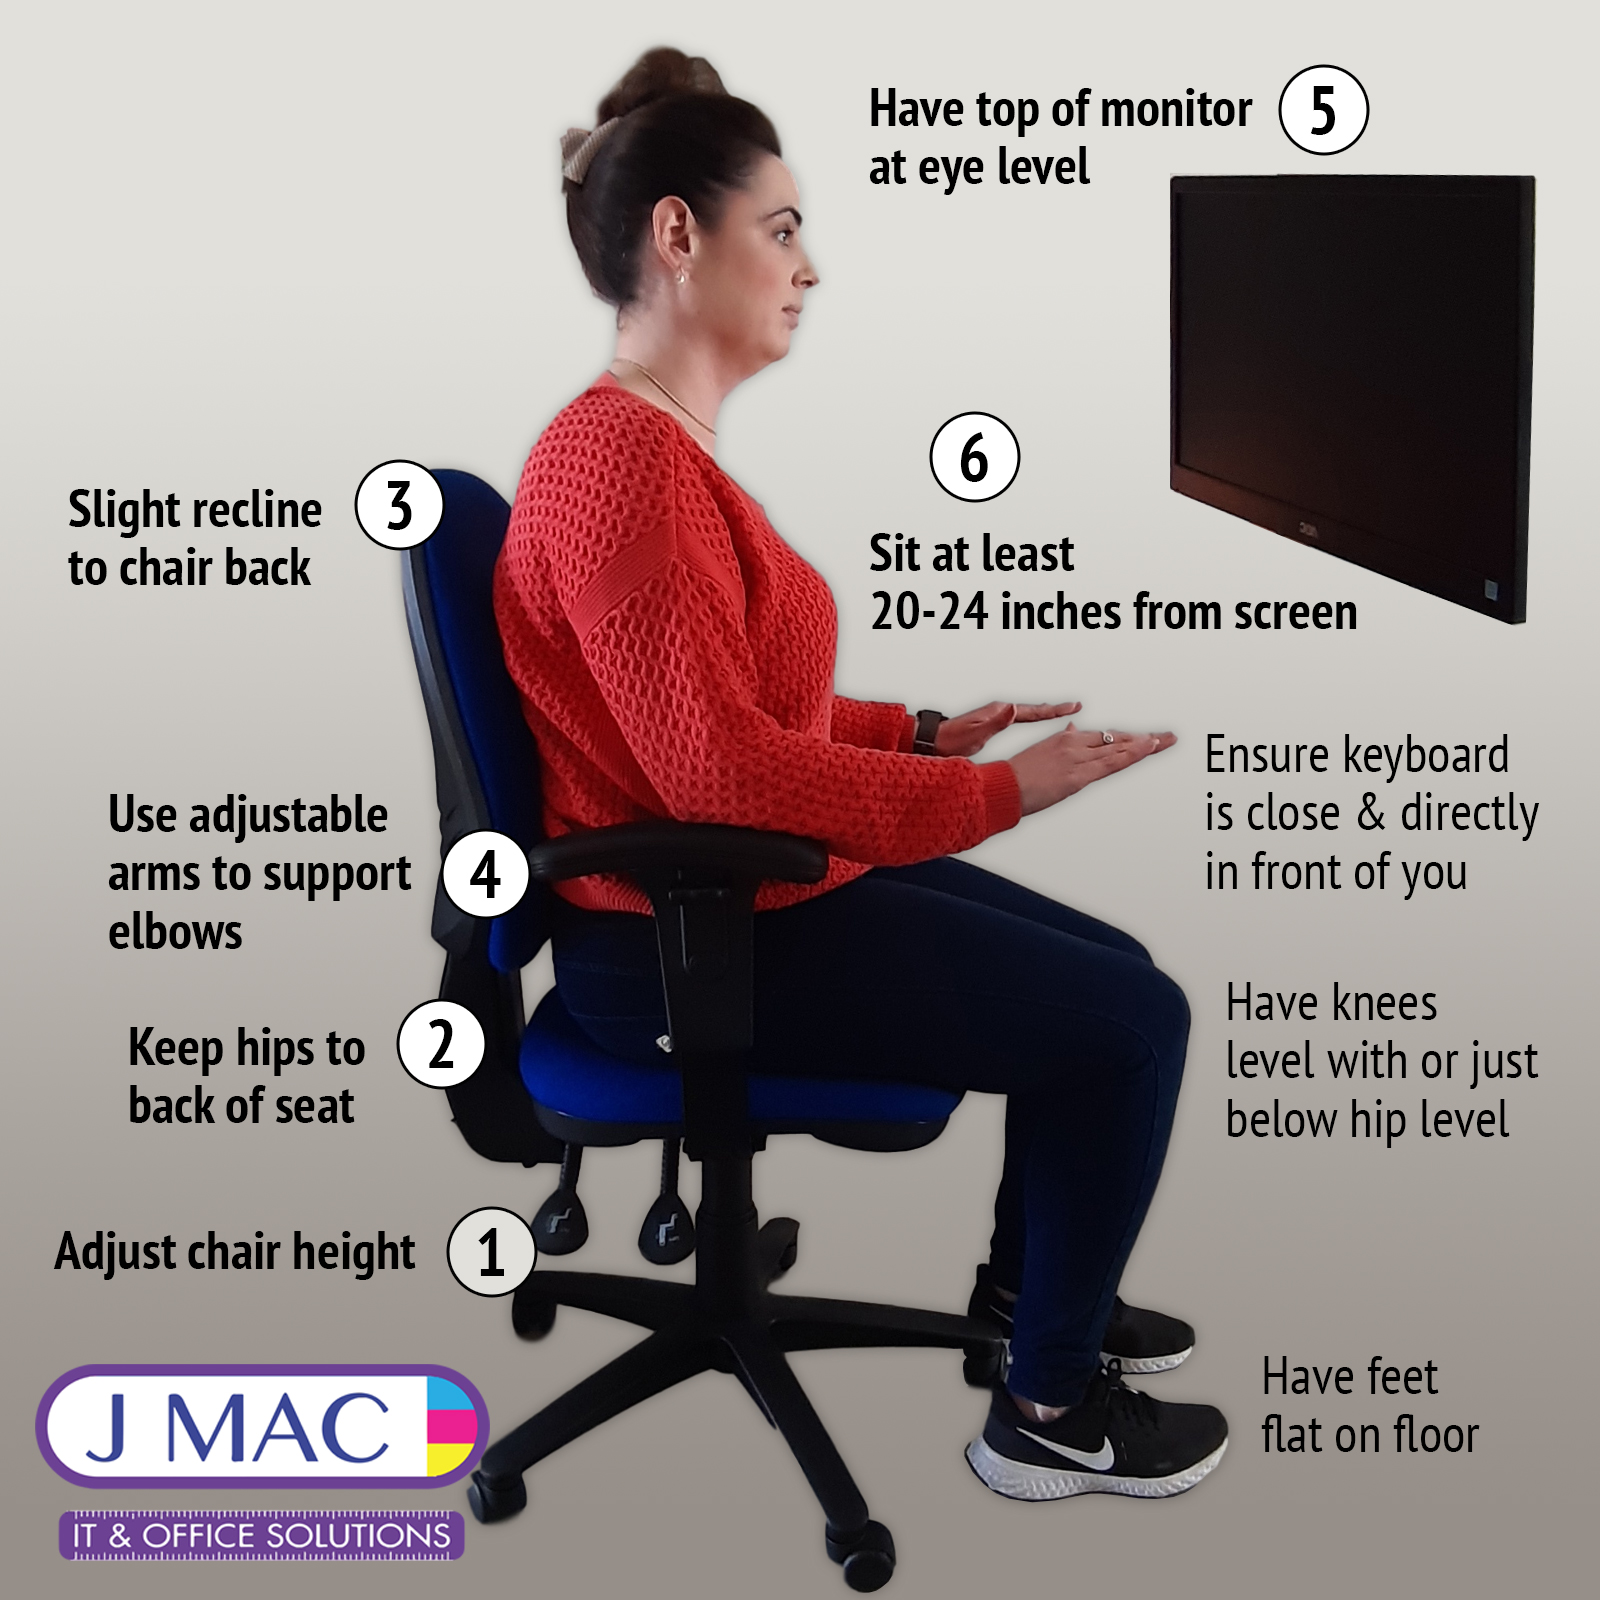 6 Simple Steps To A Good Sitting Posture While Working Jmac It Office Solutions Ireland